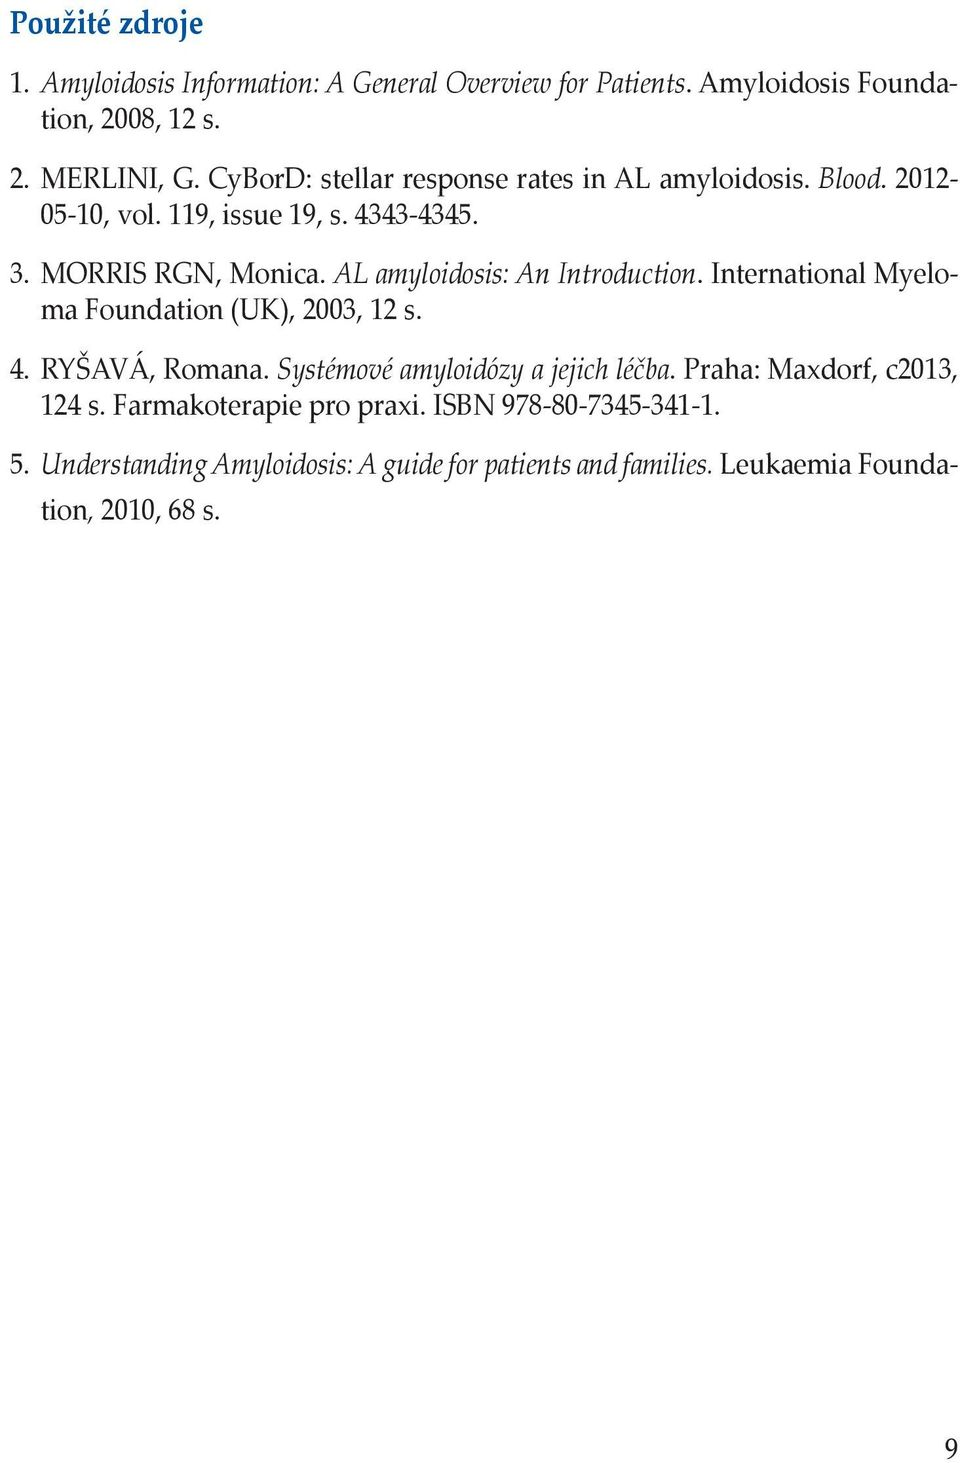 AL amyloidosis: An Introduction. International Myeloma Foundation (UK), 2003, 12 s. 4. RYŠAVÁ, Romana. Systémové amyloidózy a jejich léčba.